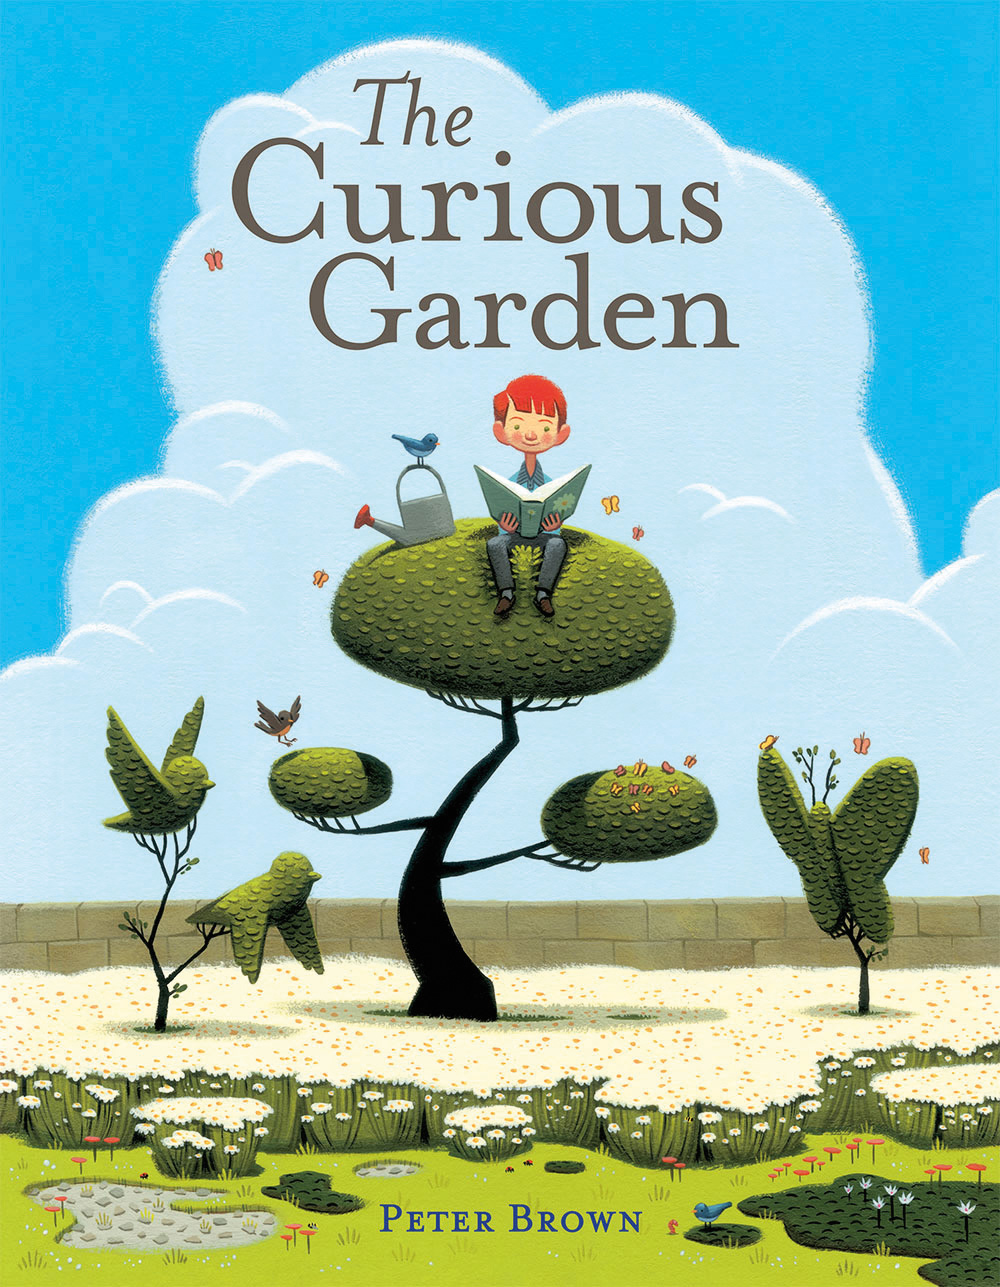 Brown, Peter 2009_04 - THE CURIOUS GARDEN - PB - RLM PR.jpg